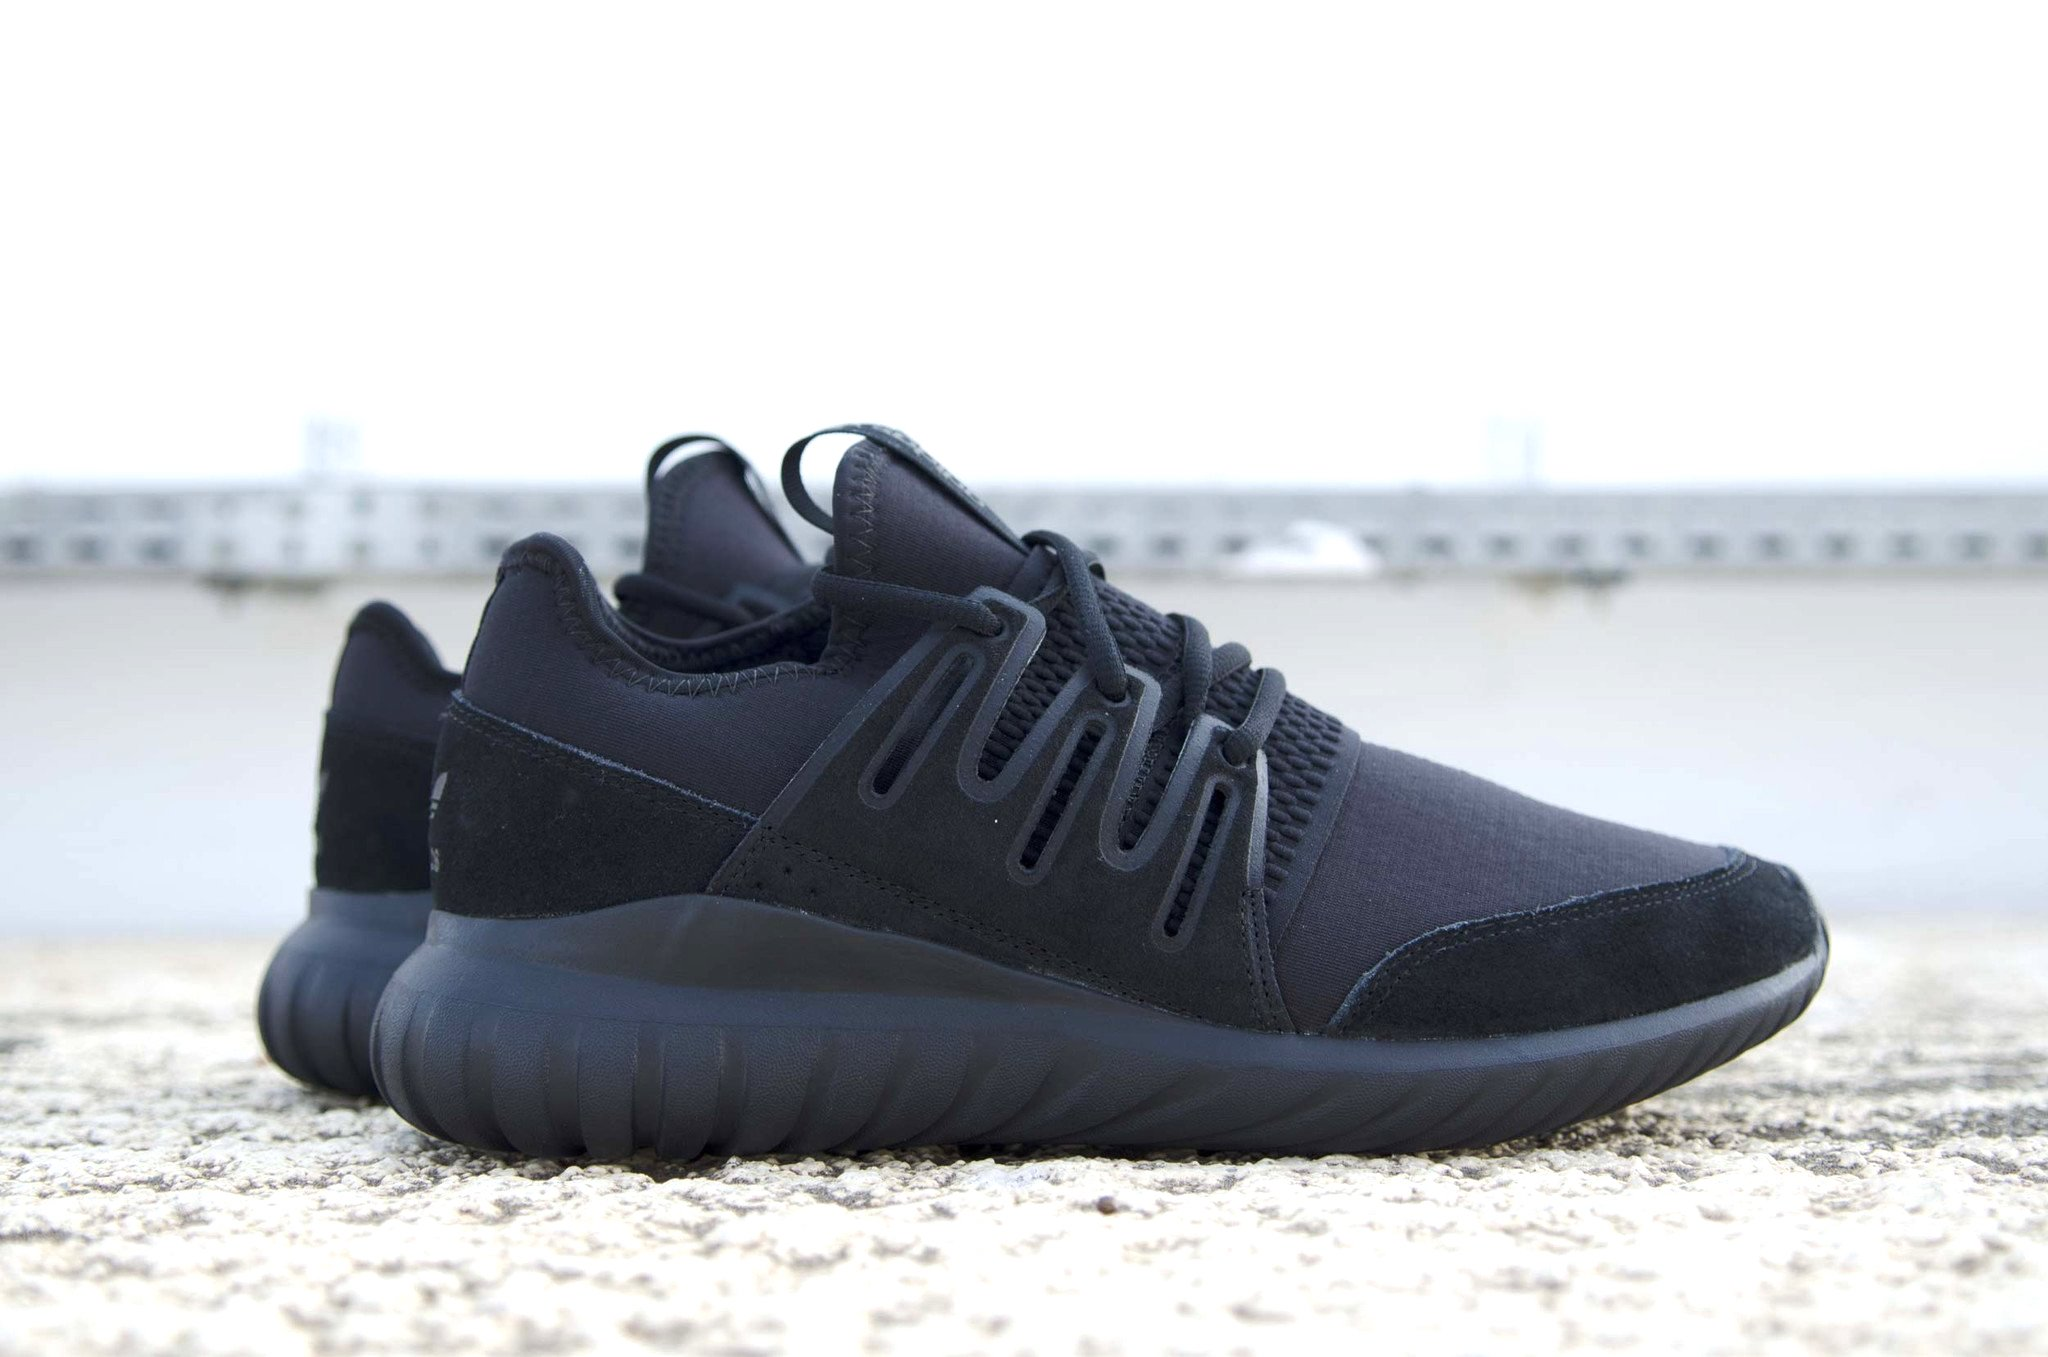 adidas Tubular Radial Footlocker